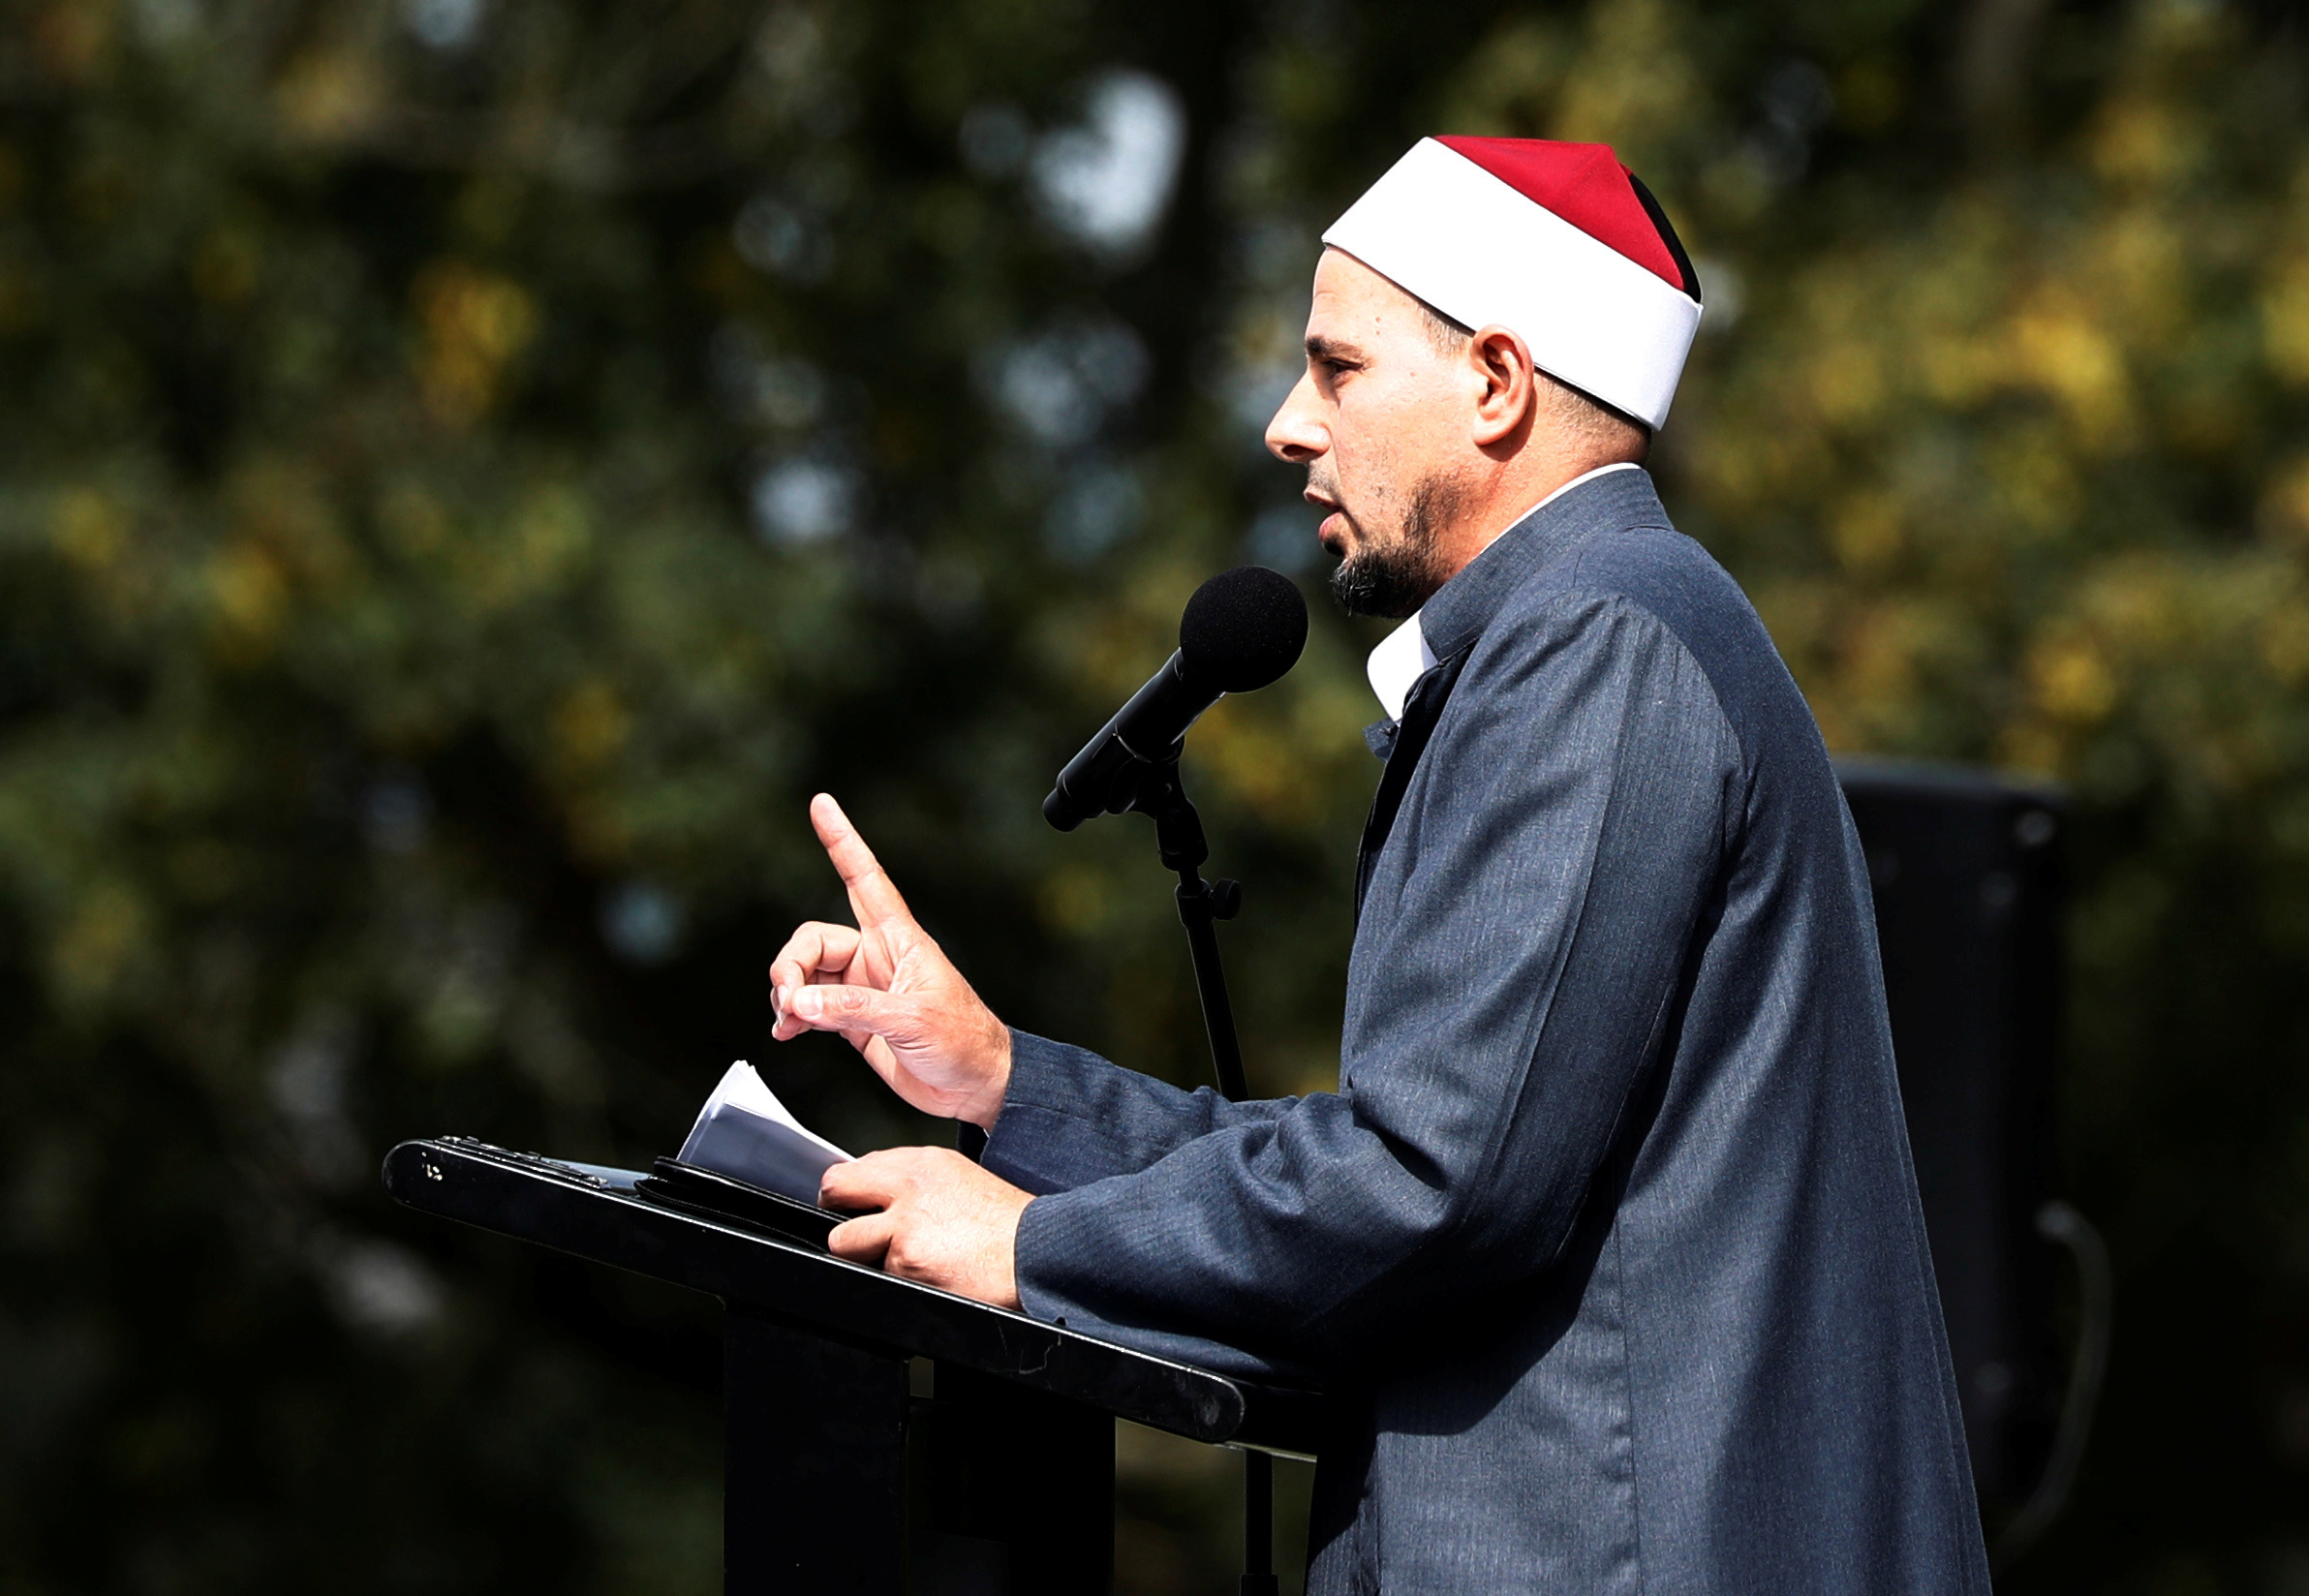 Imam Gamal Fouda leads a Friday prayer at Hagley Park outside al-Noor mosque in Christchurch, New Zealand, March 22, 2019.